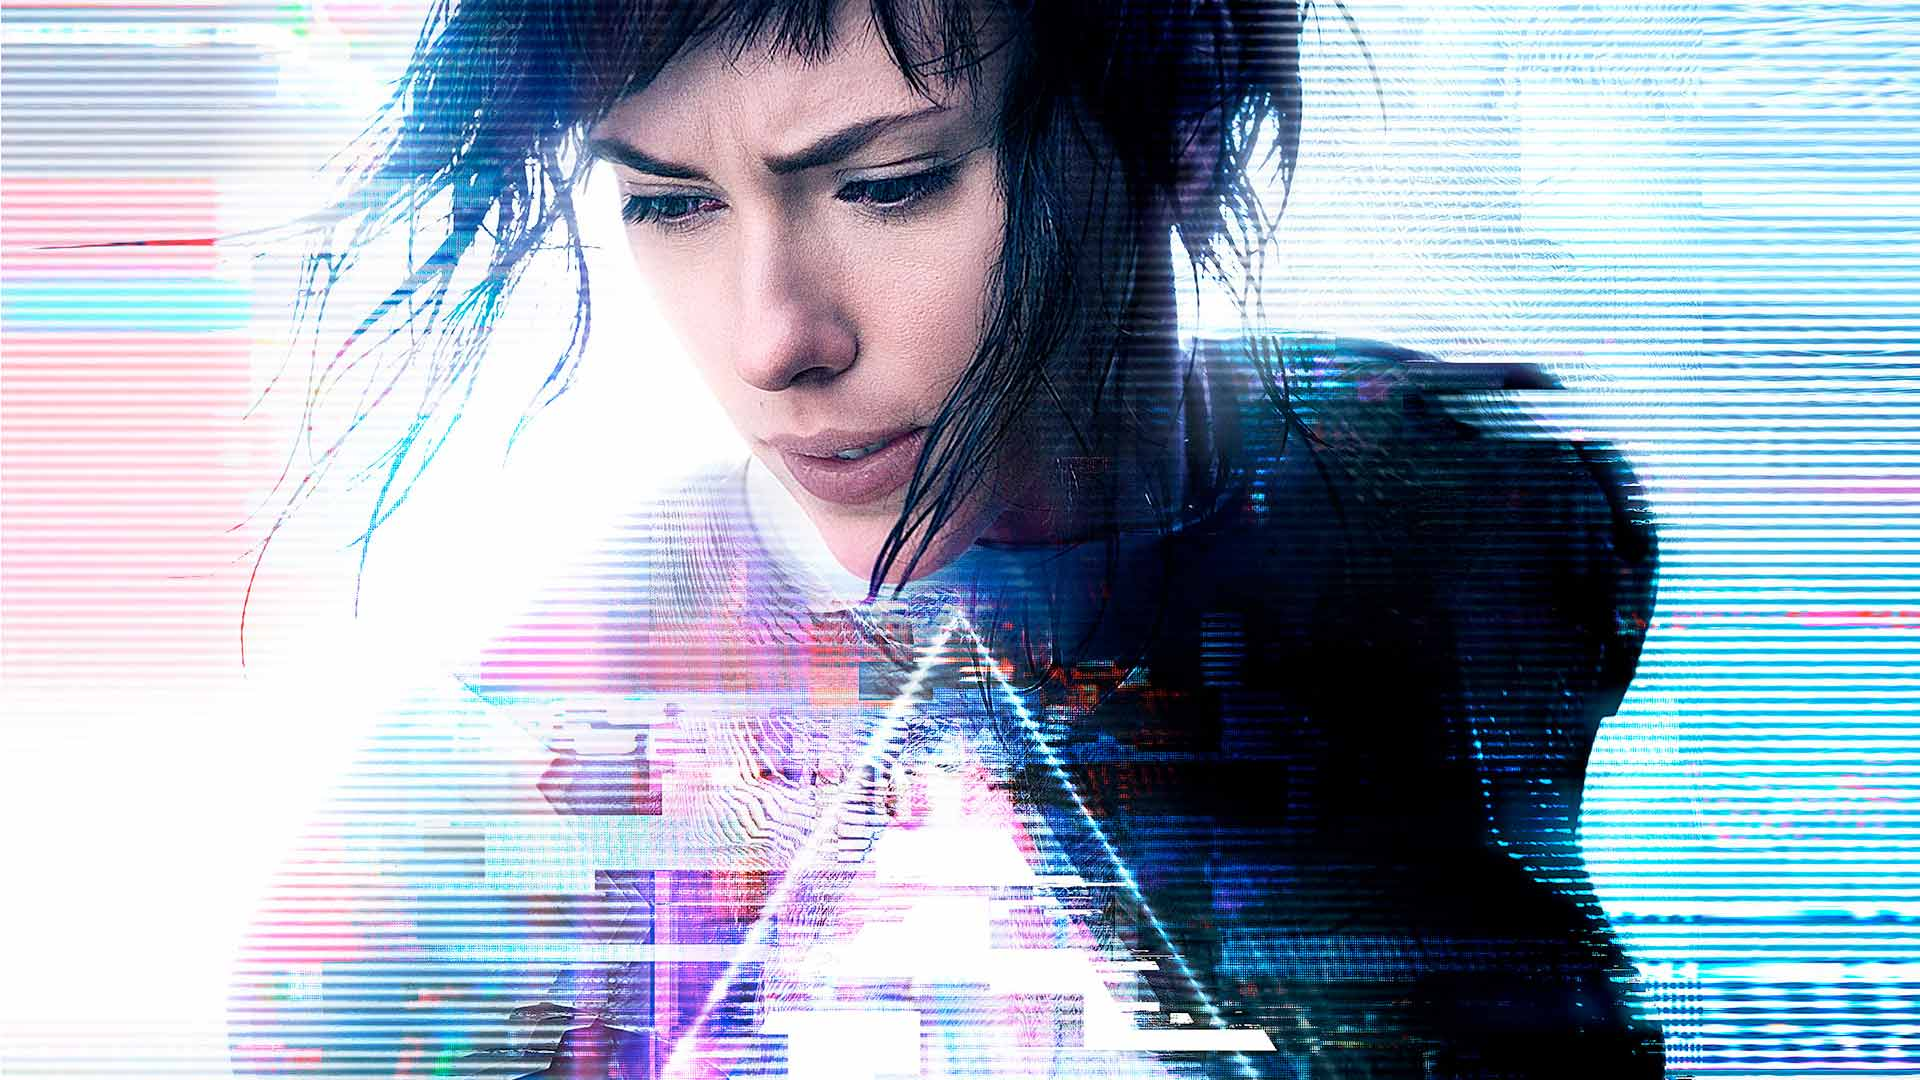 Ghost In The Shell Wallpapers HD Backgrounds, Images, Pics, Photos 1920x1080